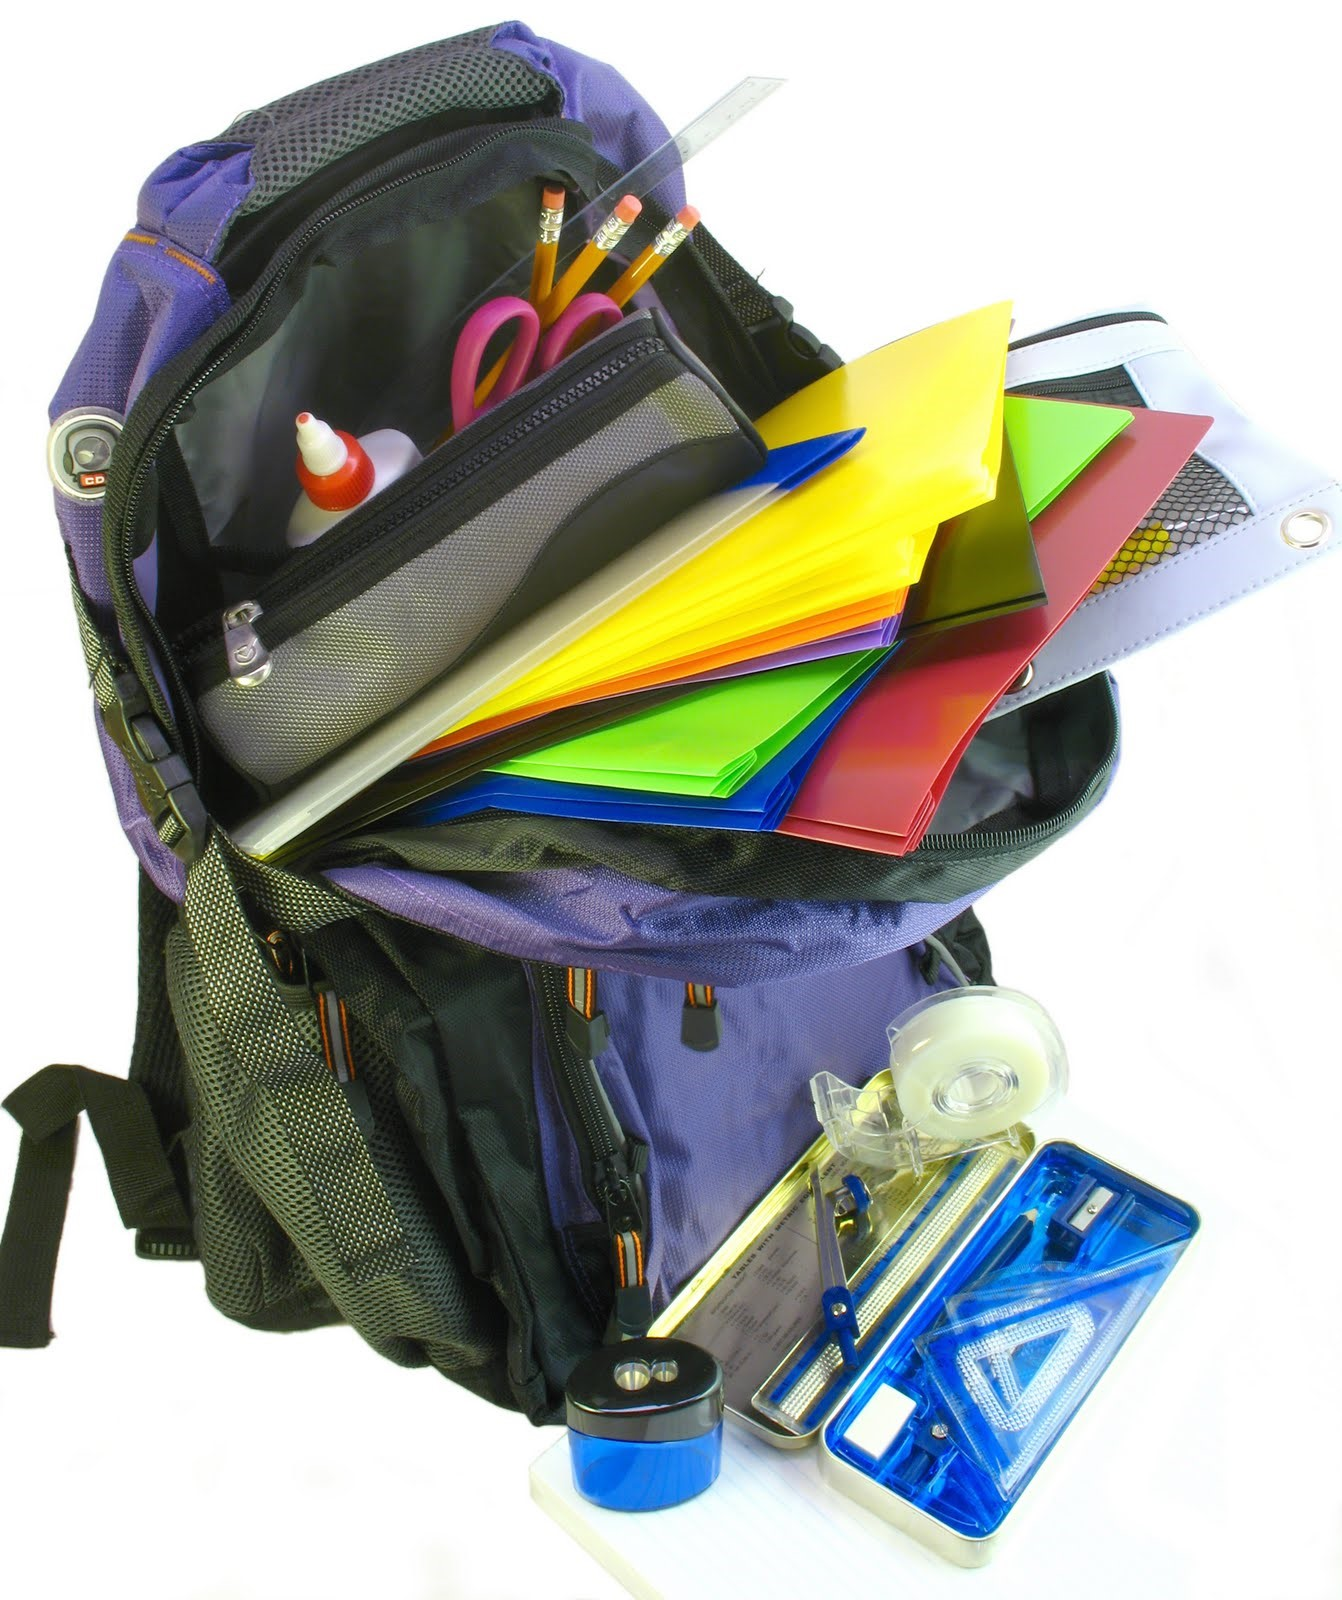 Backpacks For Back To School DmRONYZp